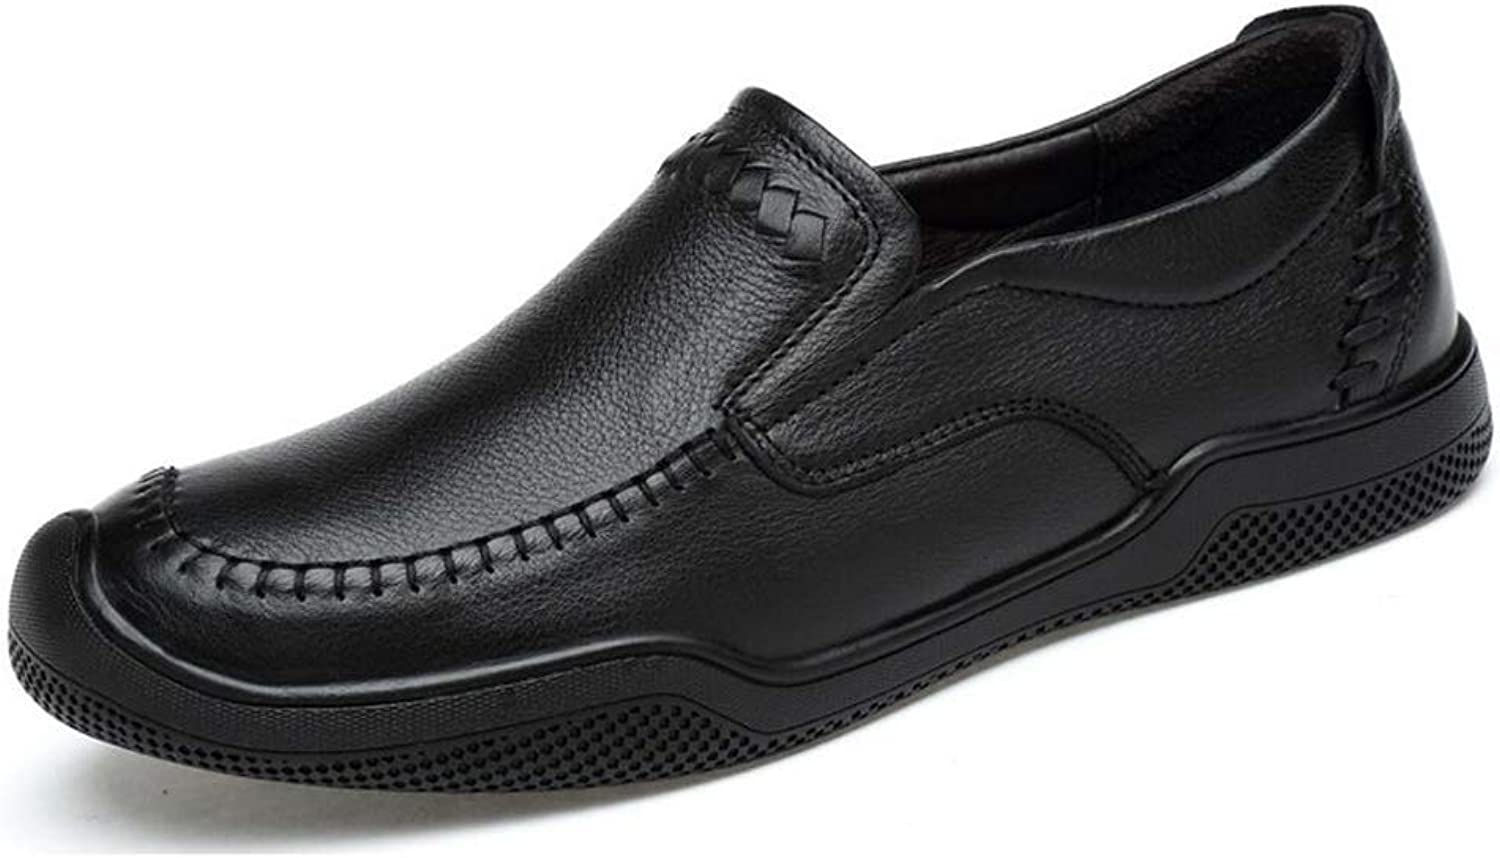 Men's shoes, Casual Flat Loafers Fashion Slip on Driving shoes, Spring Autumn Casual Business Leather shoes, Lazy Black shoes (color   Black, Size   38)